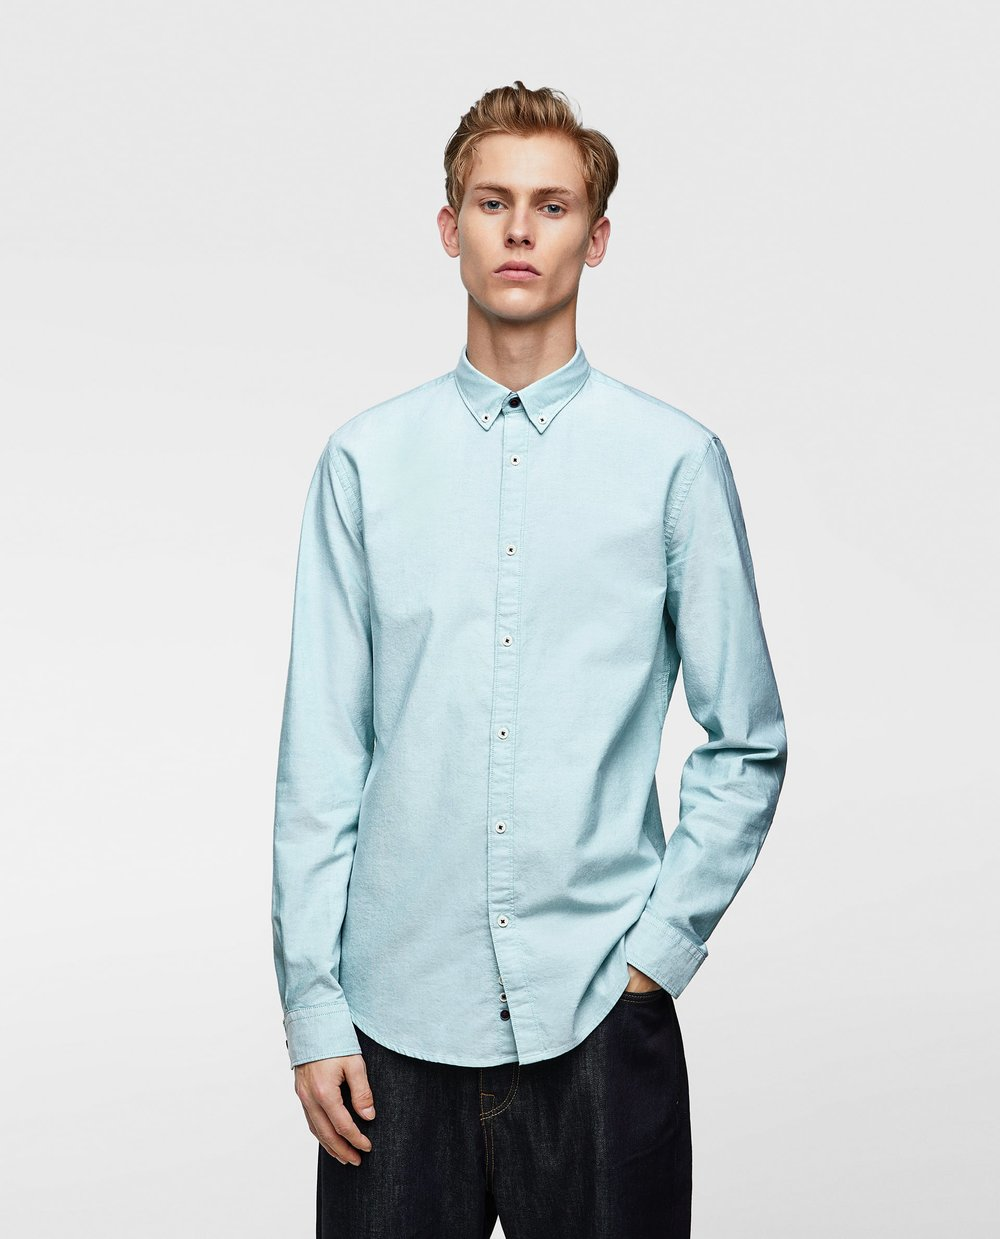 1. THE SHIRT - ZARA: Plain Oxford Shirt, £19.99Keep it simple with this slim-fit Oxford shirt. Pair with black jeans for a smart day look, or under a blazer for a more formal look.